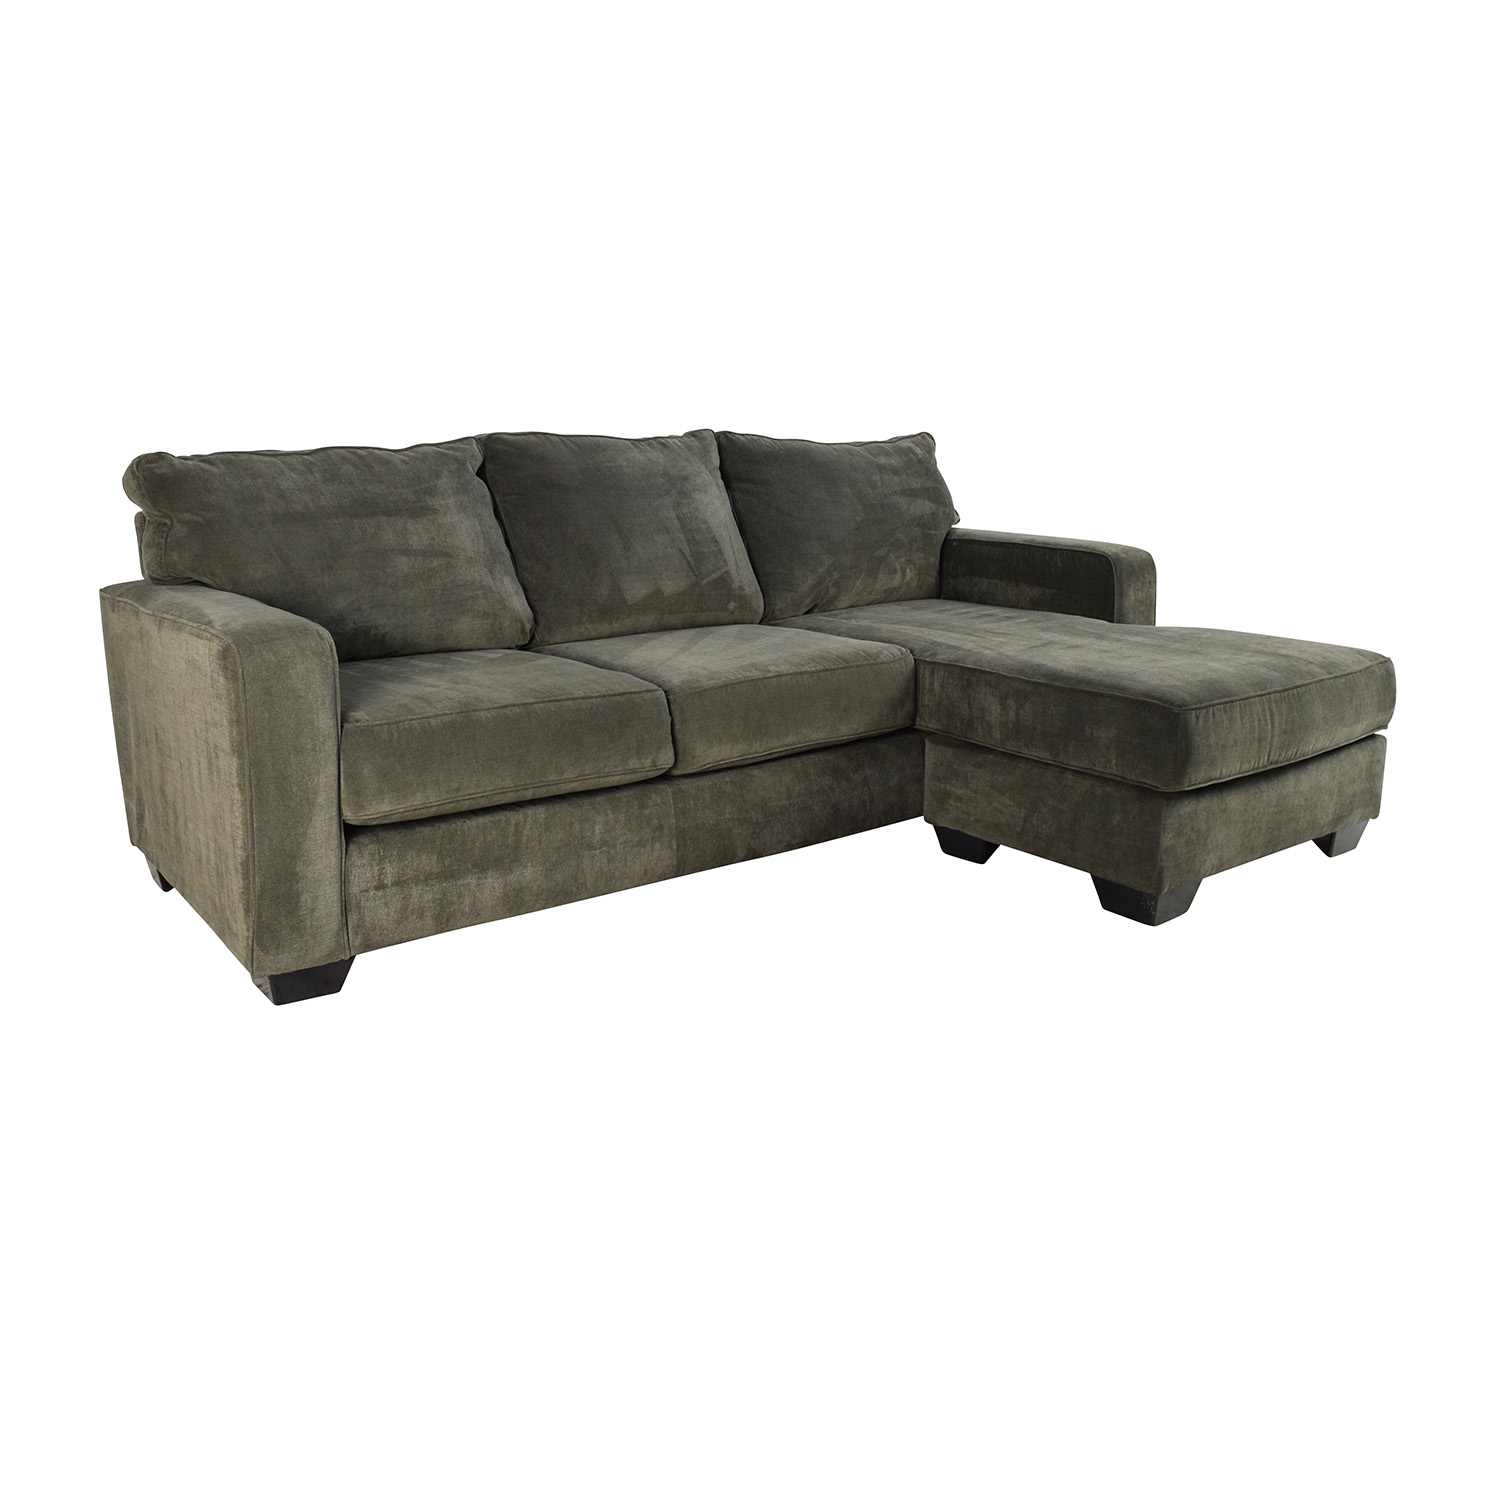 ... Jennifer Convertibles Jennifer Convertibles Sectional Sofa Sectionals ...  sc 1 st  Furnishare : jennifer convertibles sectional sofas - Sectionals, Sofas & Couches